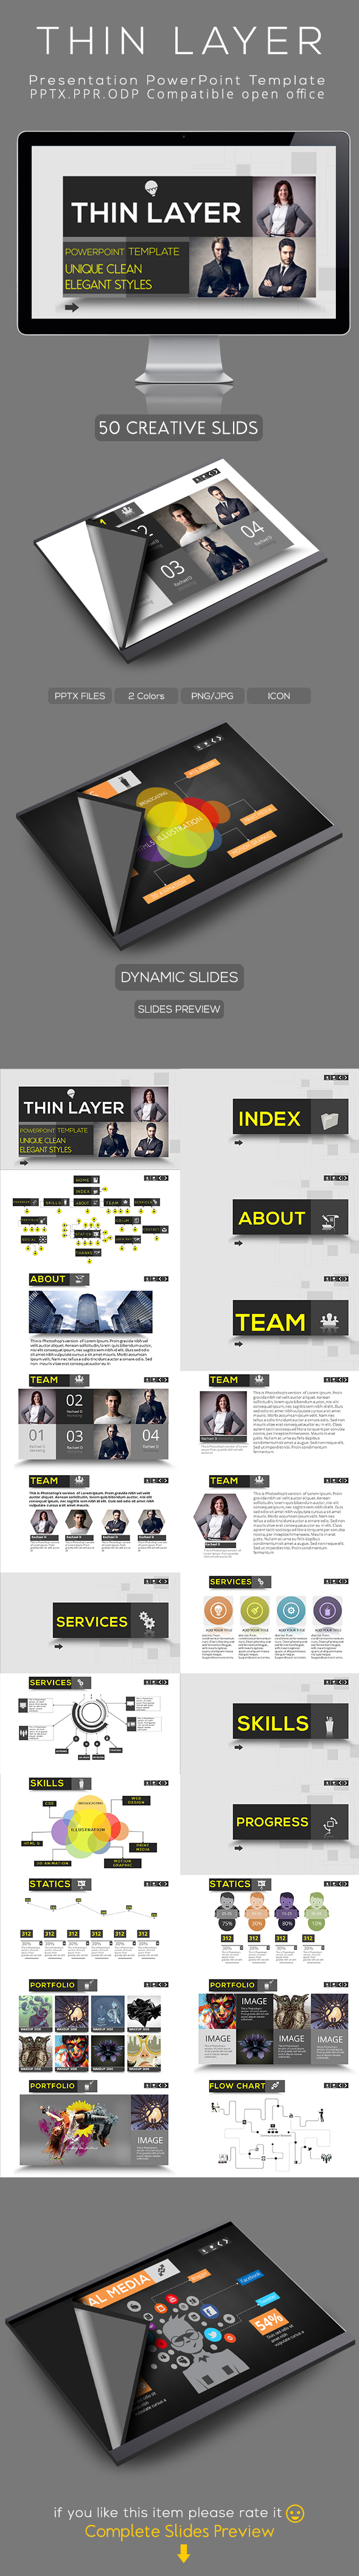 thin layer powerpoint presentation template on behance, Montuca Powerpoint Presentation Template Download, Presentation templates